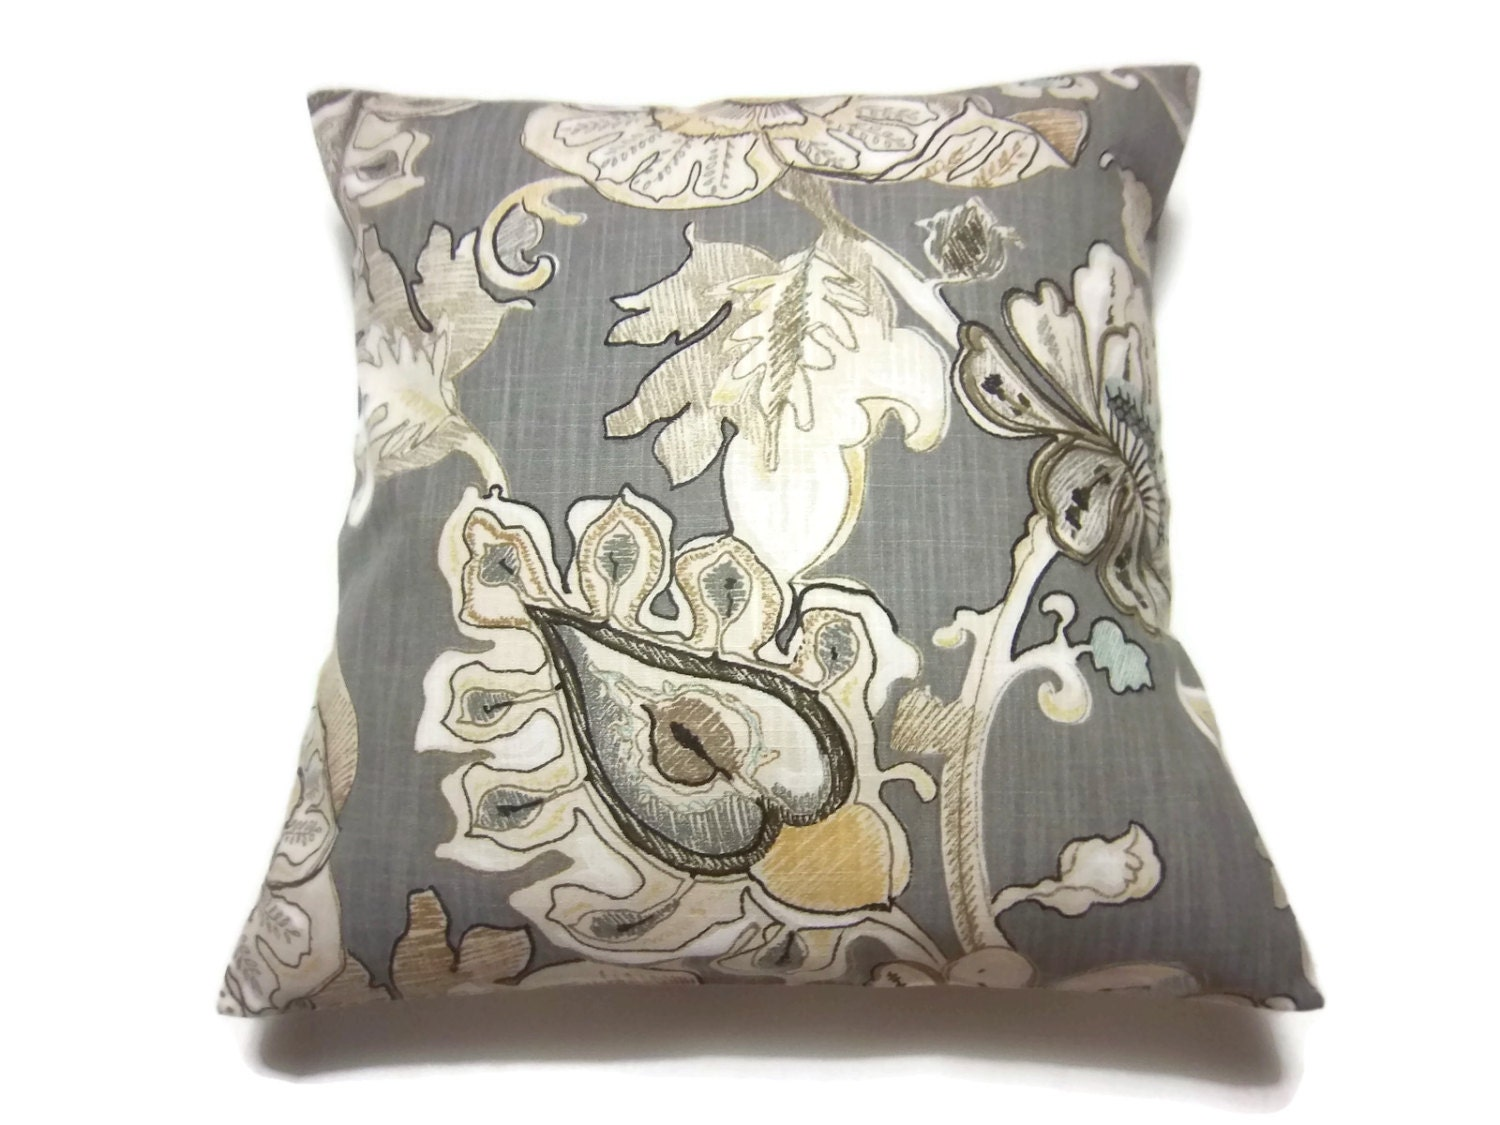 Decorative Pillow Cover Bold Floral Design Gray Ivory Tan